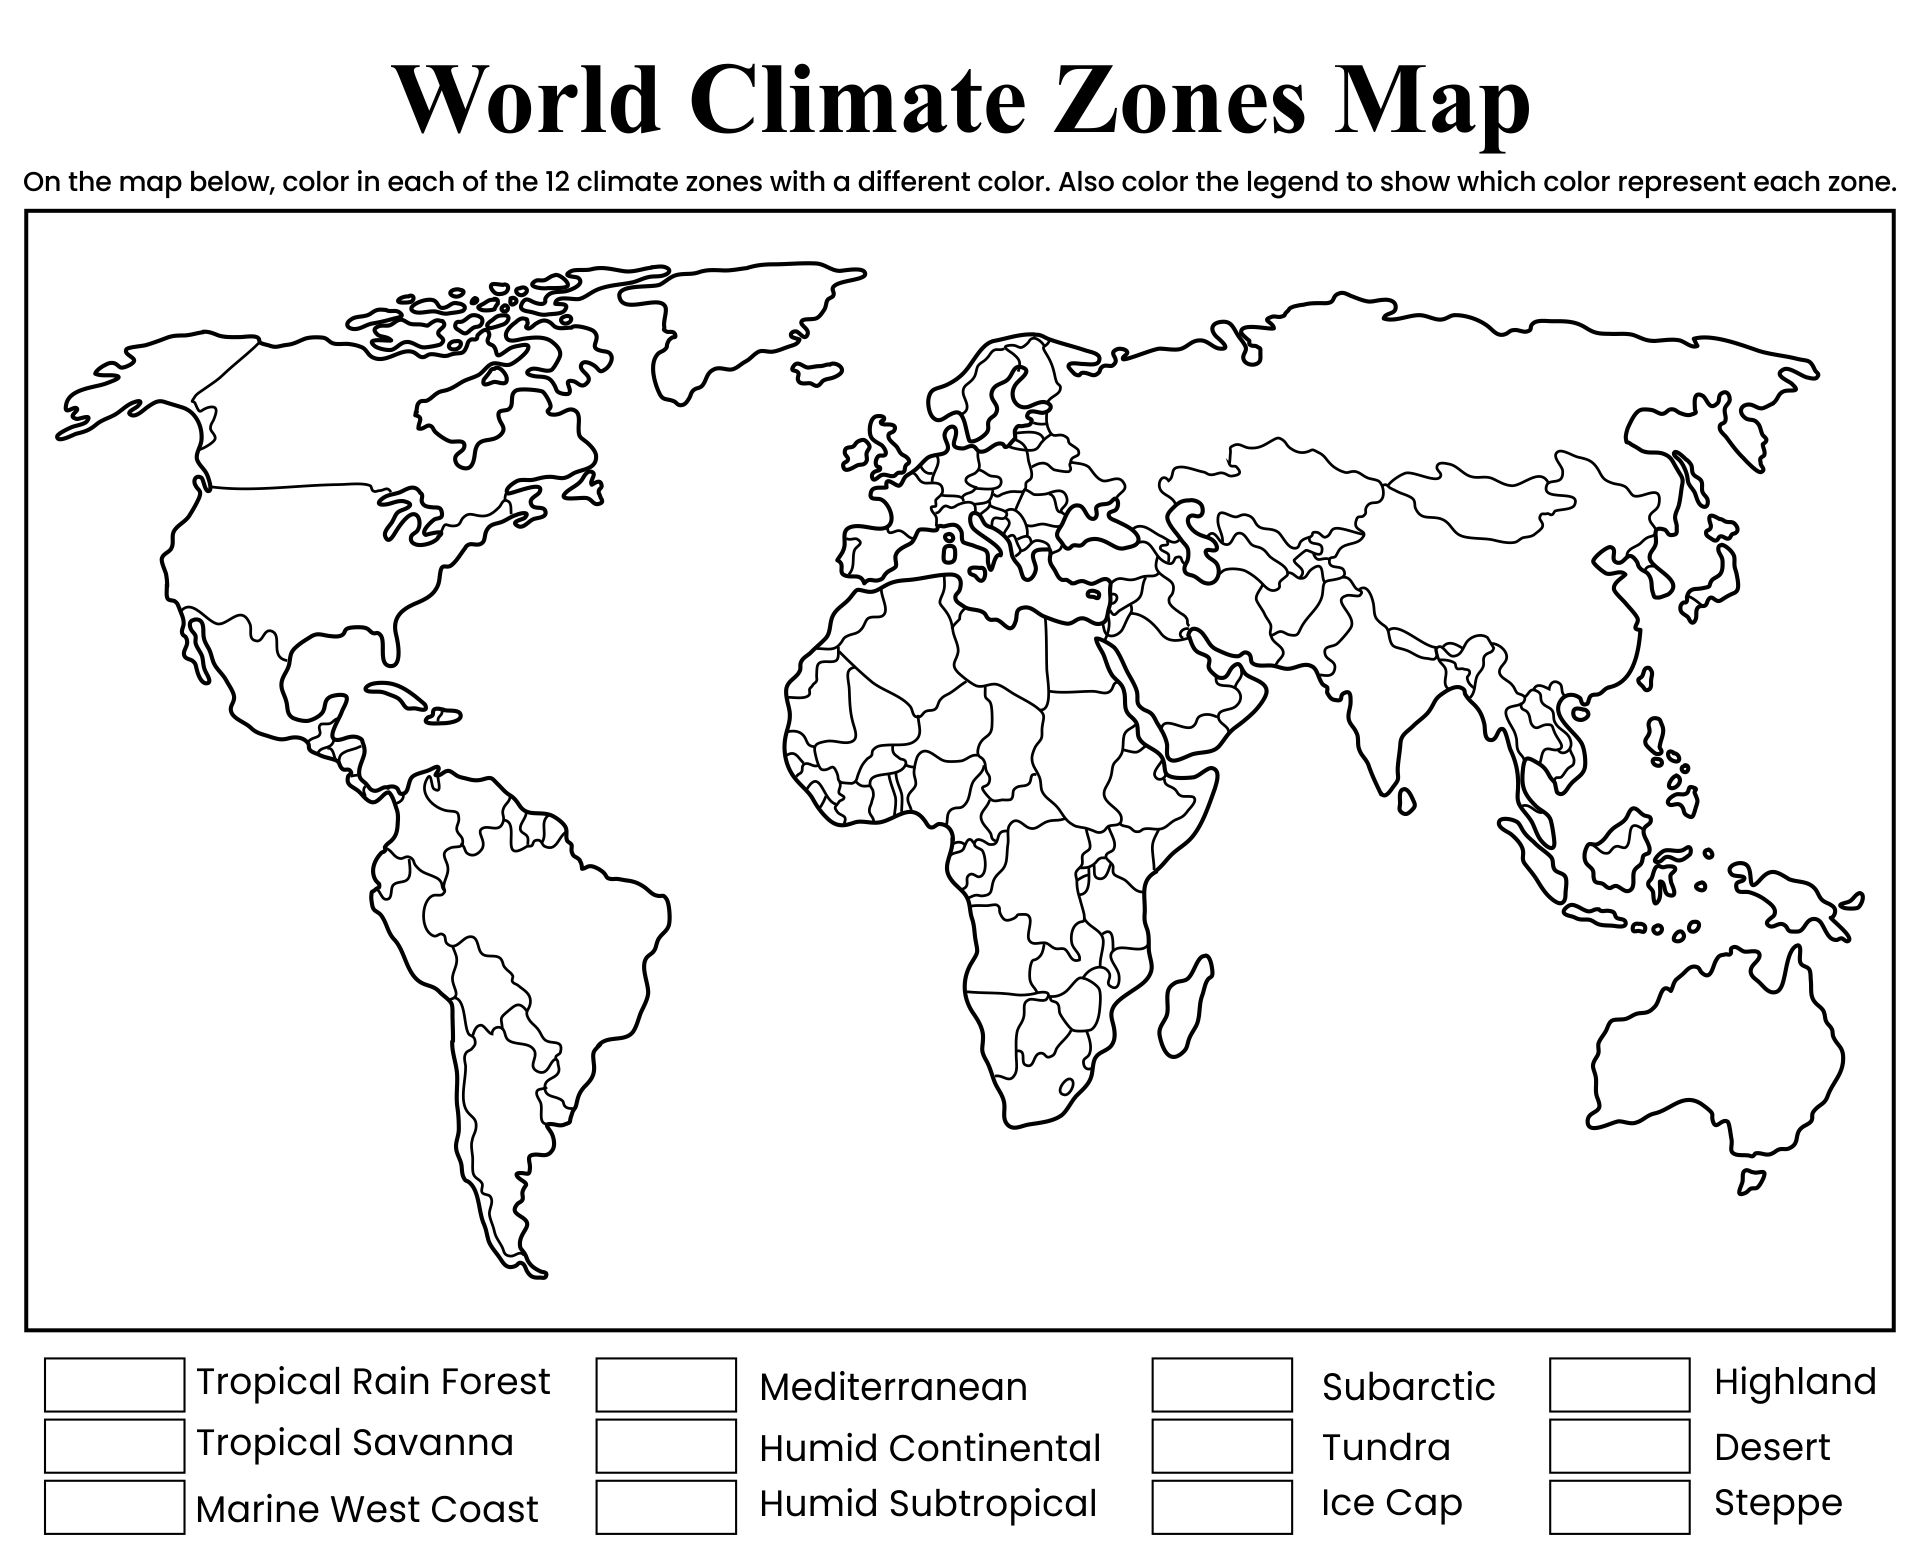 World Climate Zones Map Worksheet